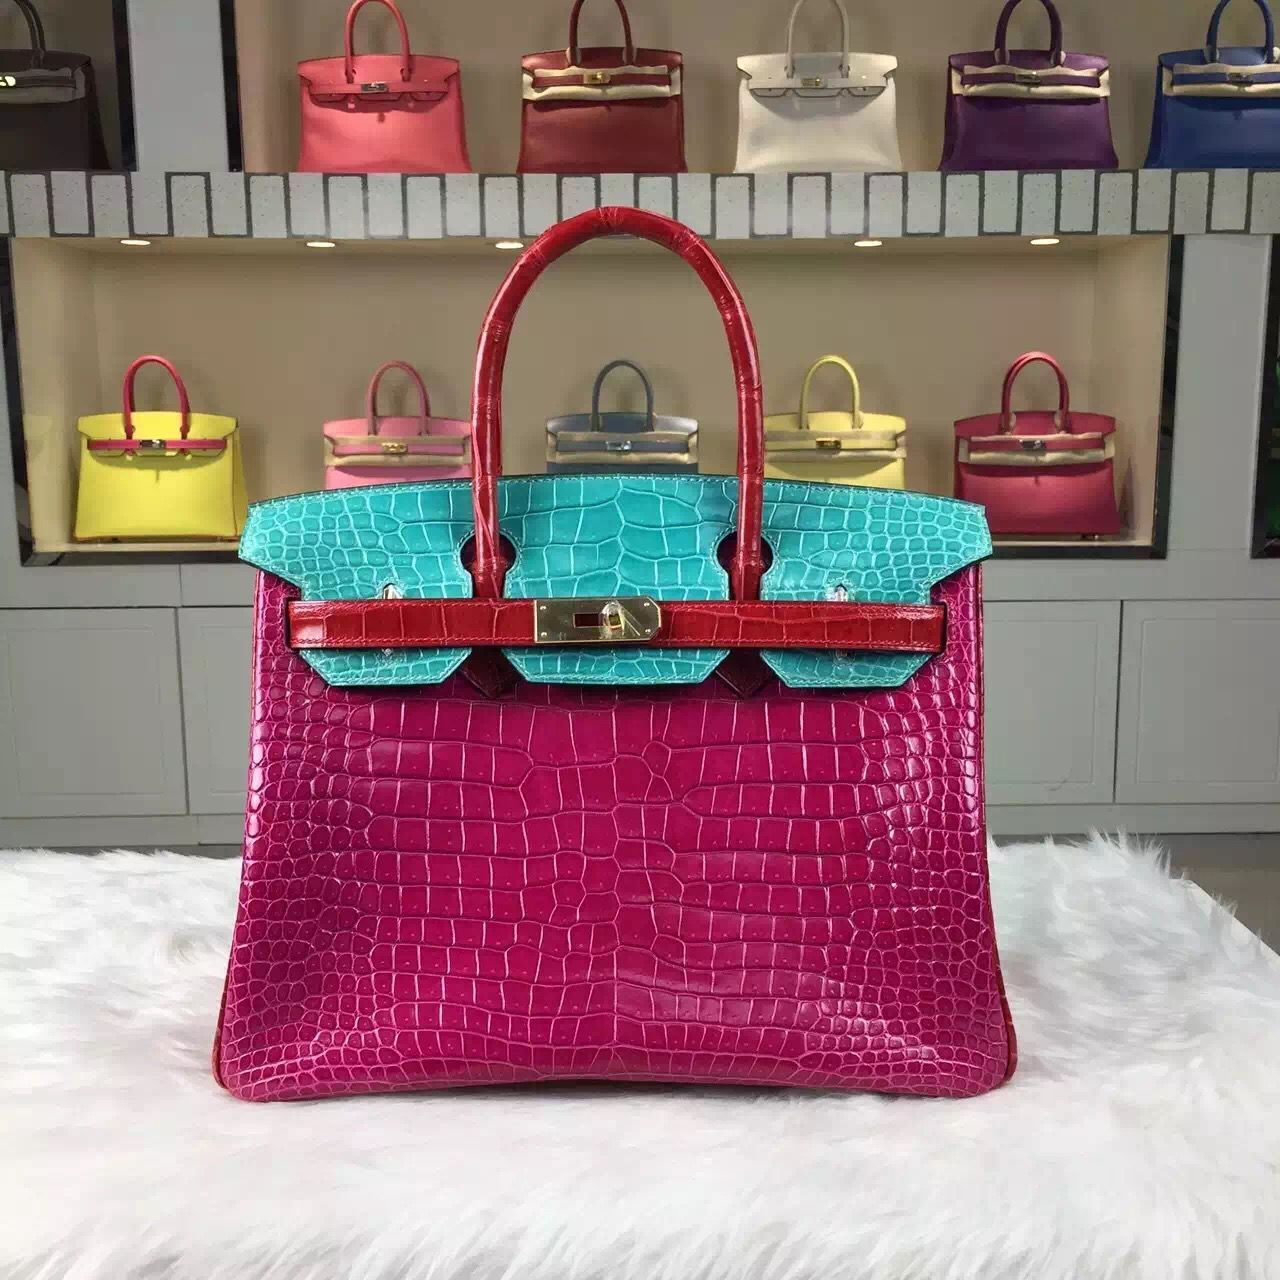 b9a8e6bef4 Brand  Hermes  Style  Birkin Bag30cm  Material Crocodile Shiny Leather (HCP  original leather) Color J5 6W Q5Color-blocking   Hardware  silver